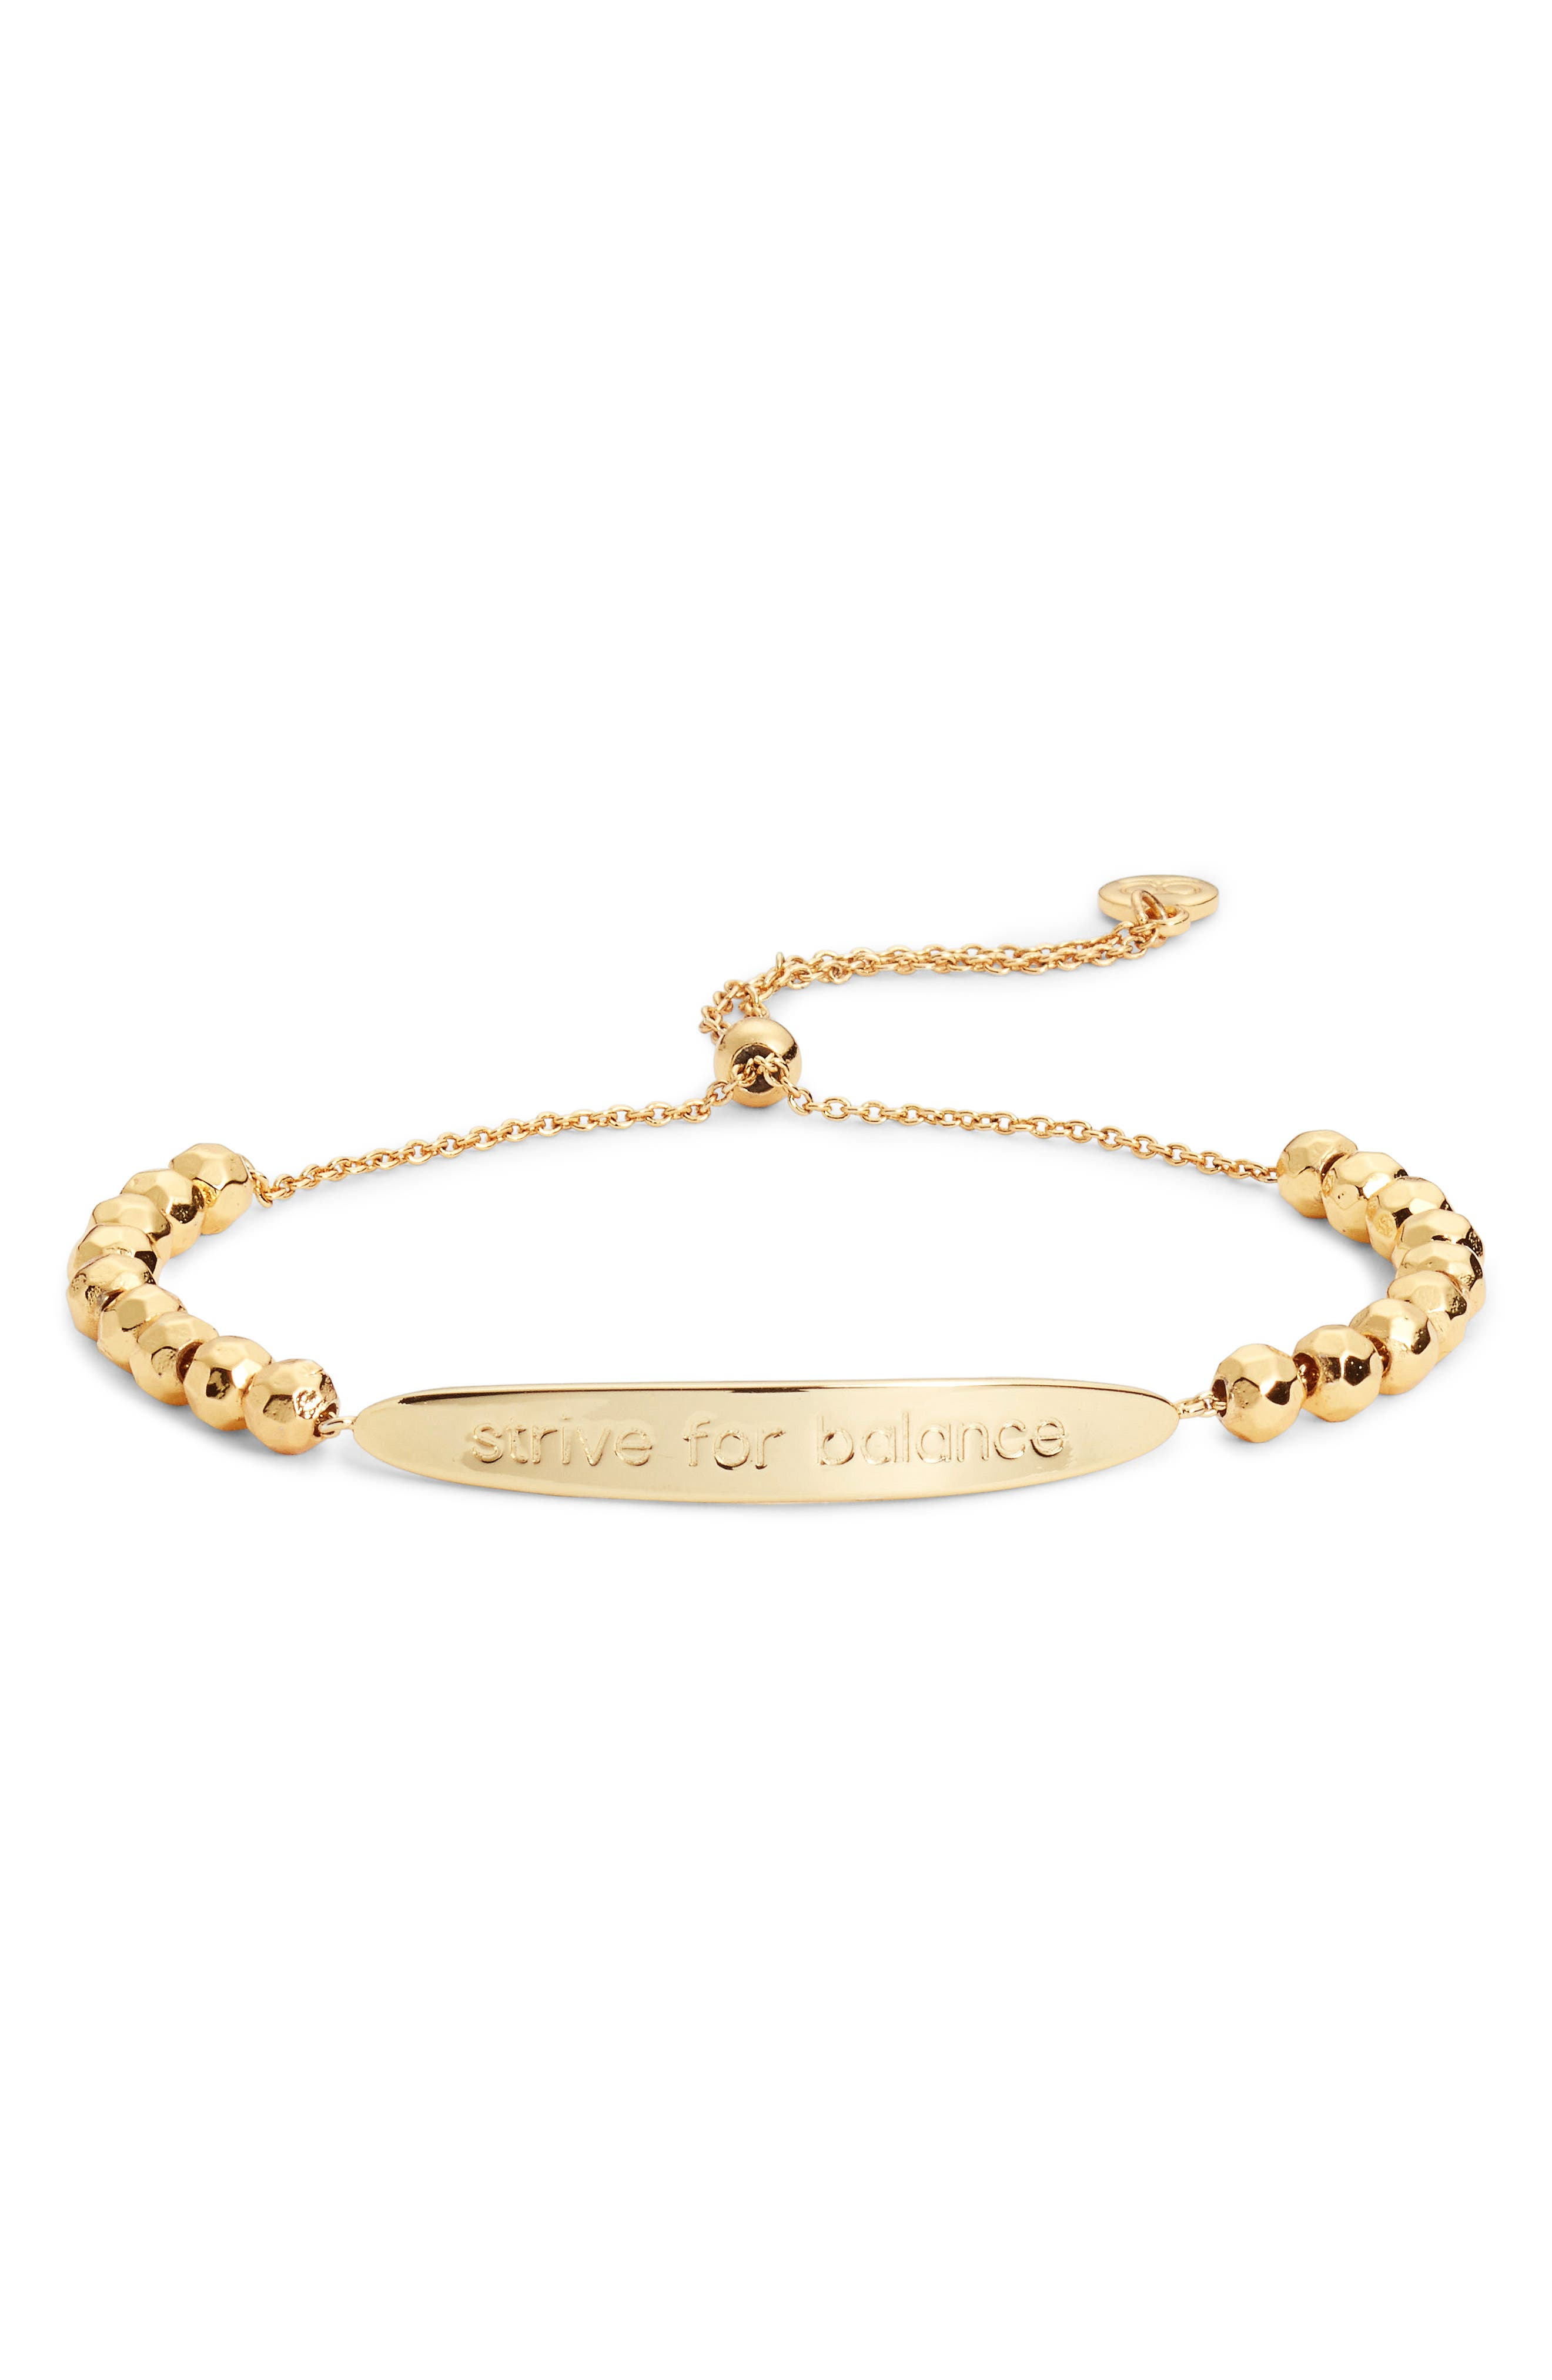 gorjana Power Intention Strive For Balance Bracelet